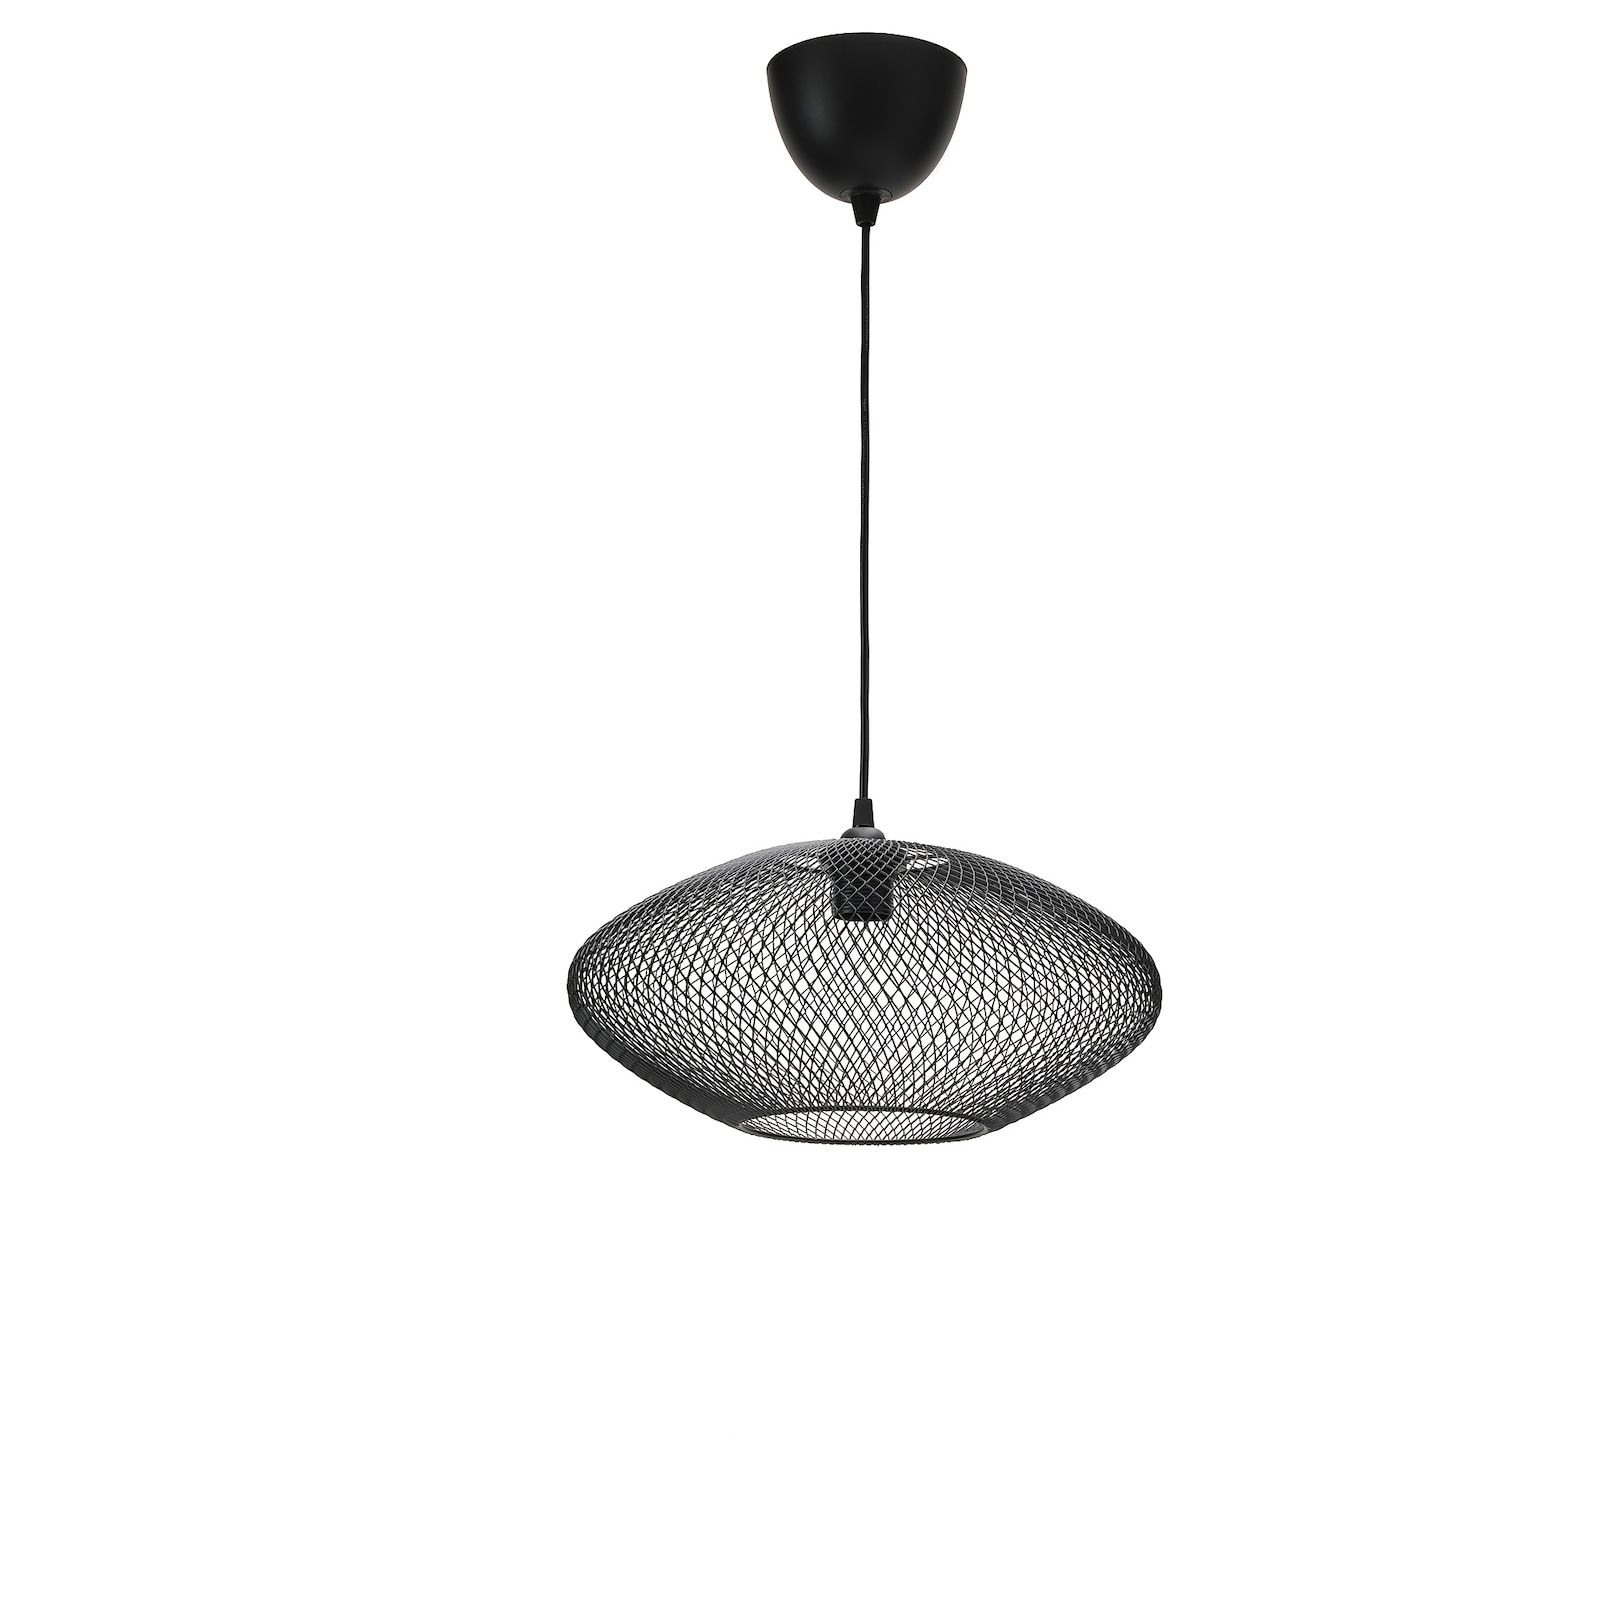 Luftmassa Hemma Suspension Motifs Ovales Noir 37cm Ikea Canada Ikea Ikea Pendant Light Decorative Light Bulbs Pendant Lamp